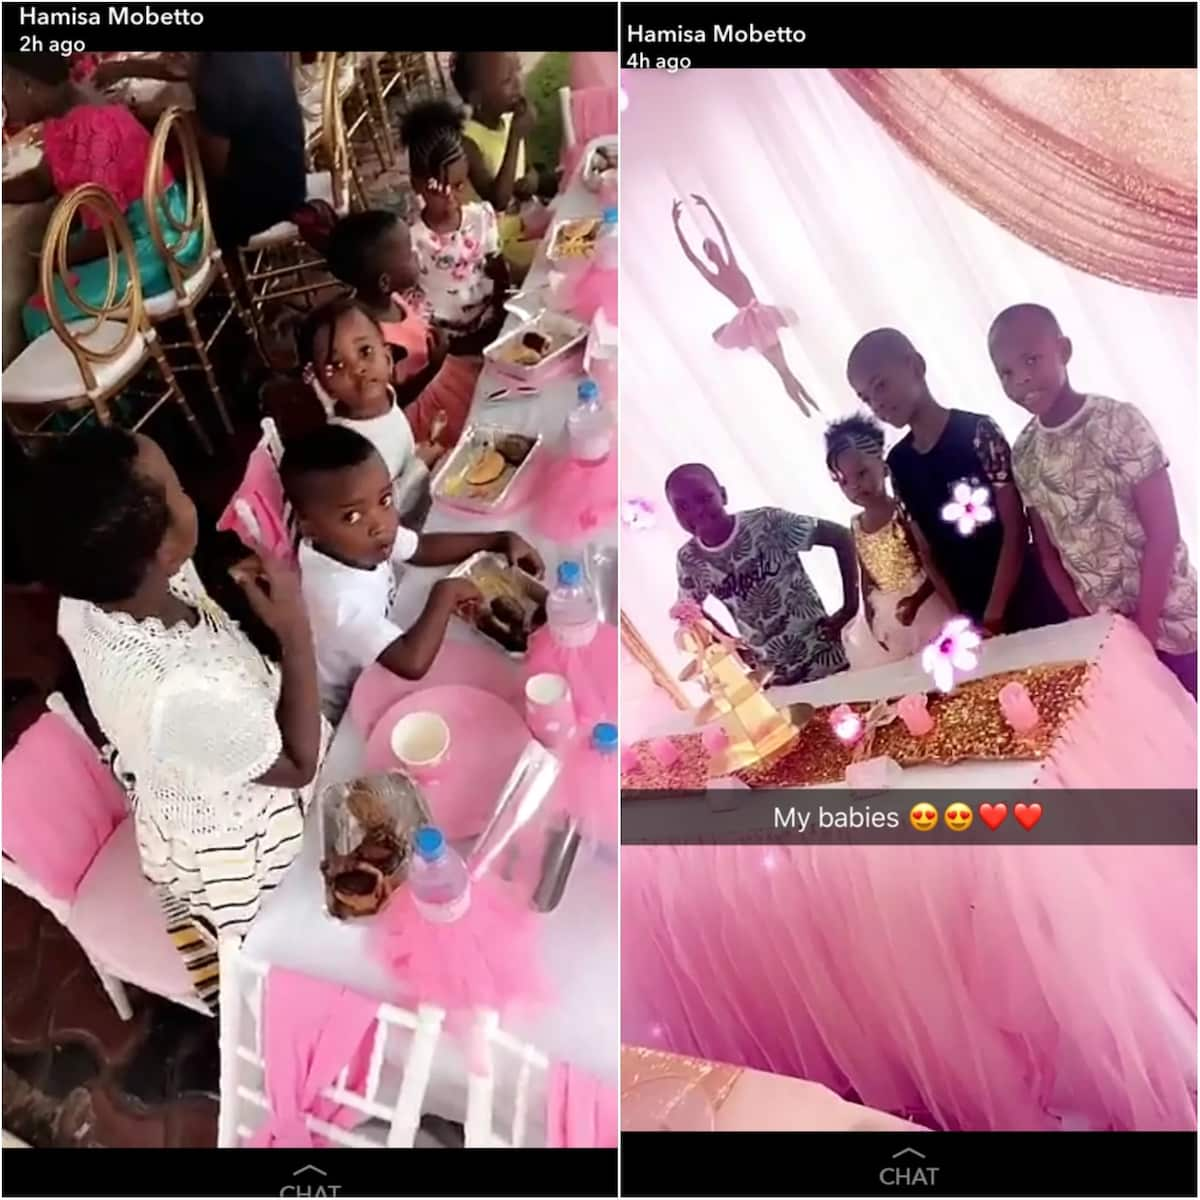 Diamond Platnumz's mpango wa kando throws lavish princess party to celebrate daughter's birthday